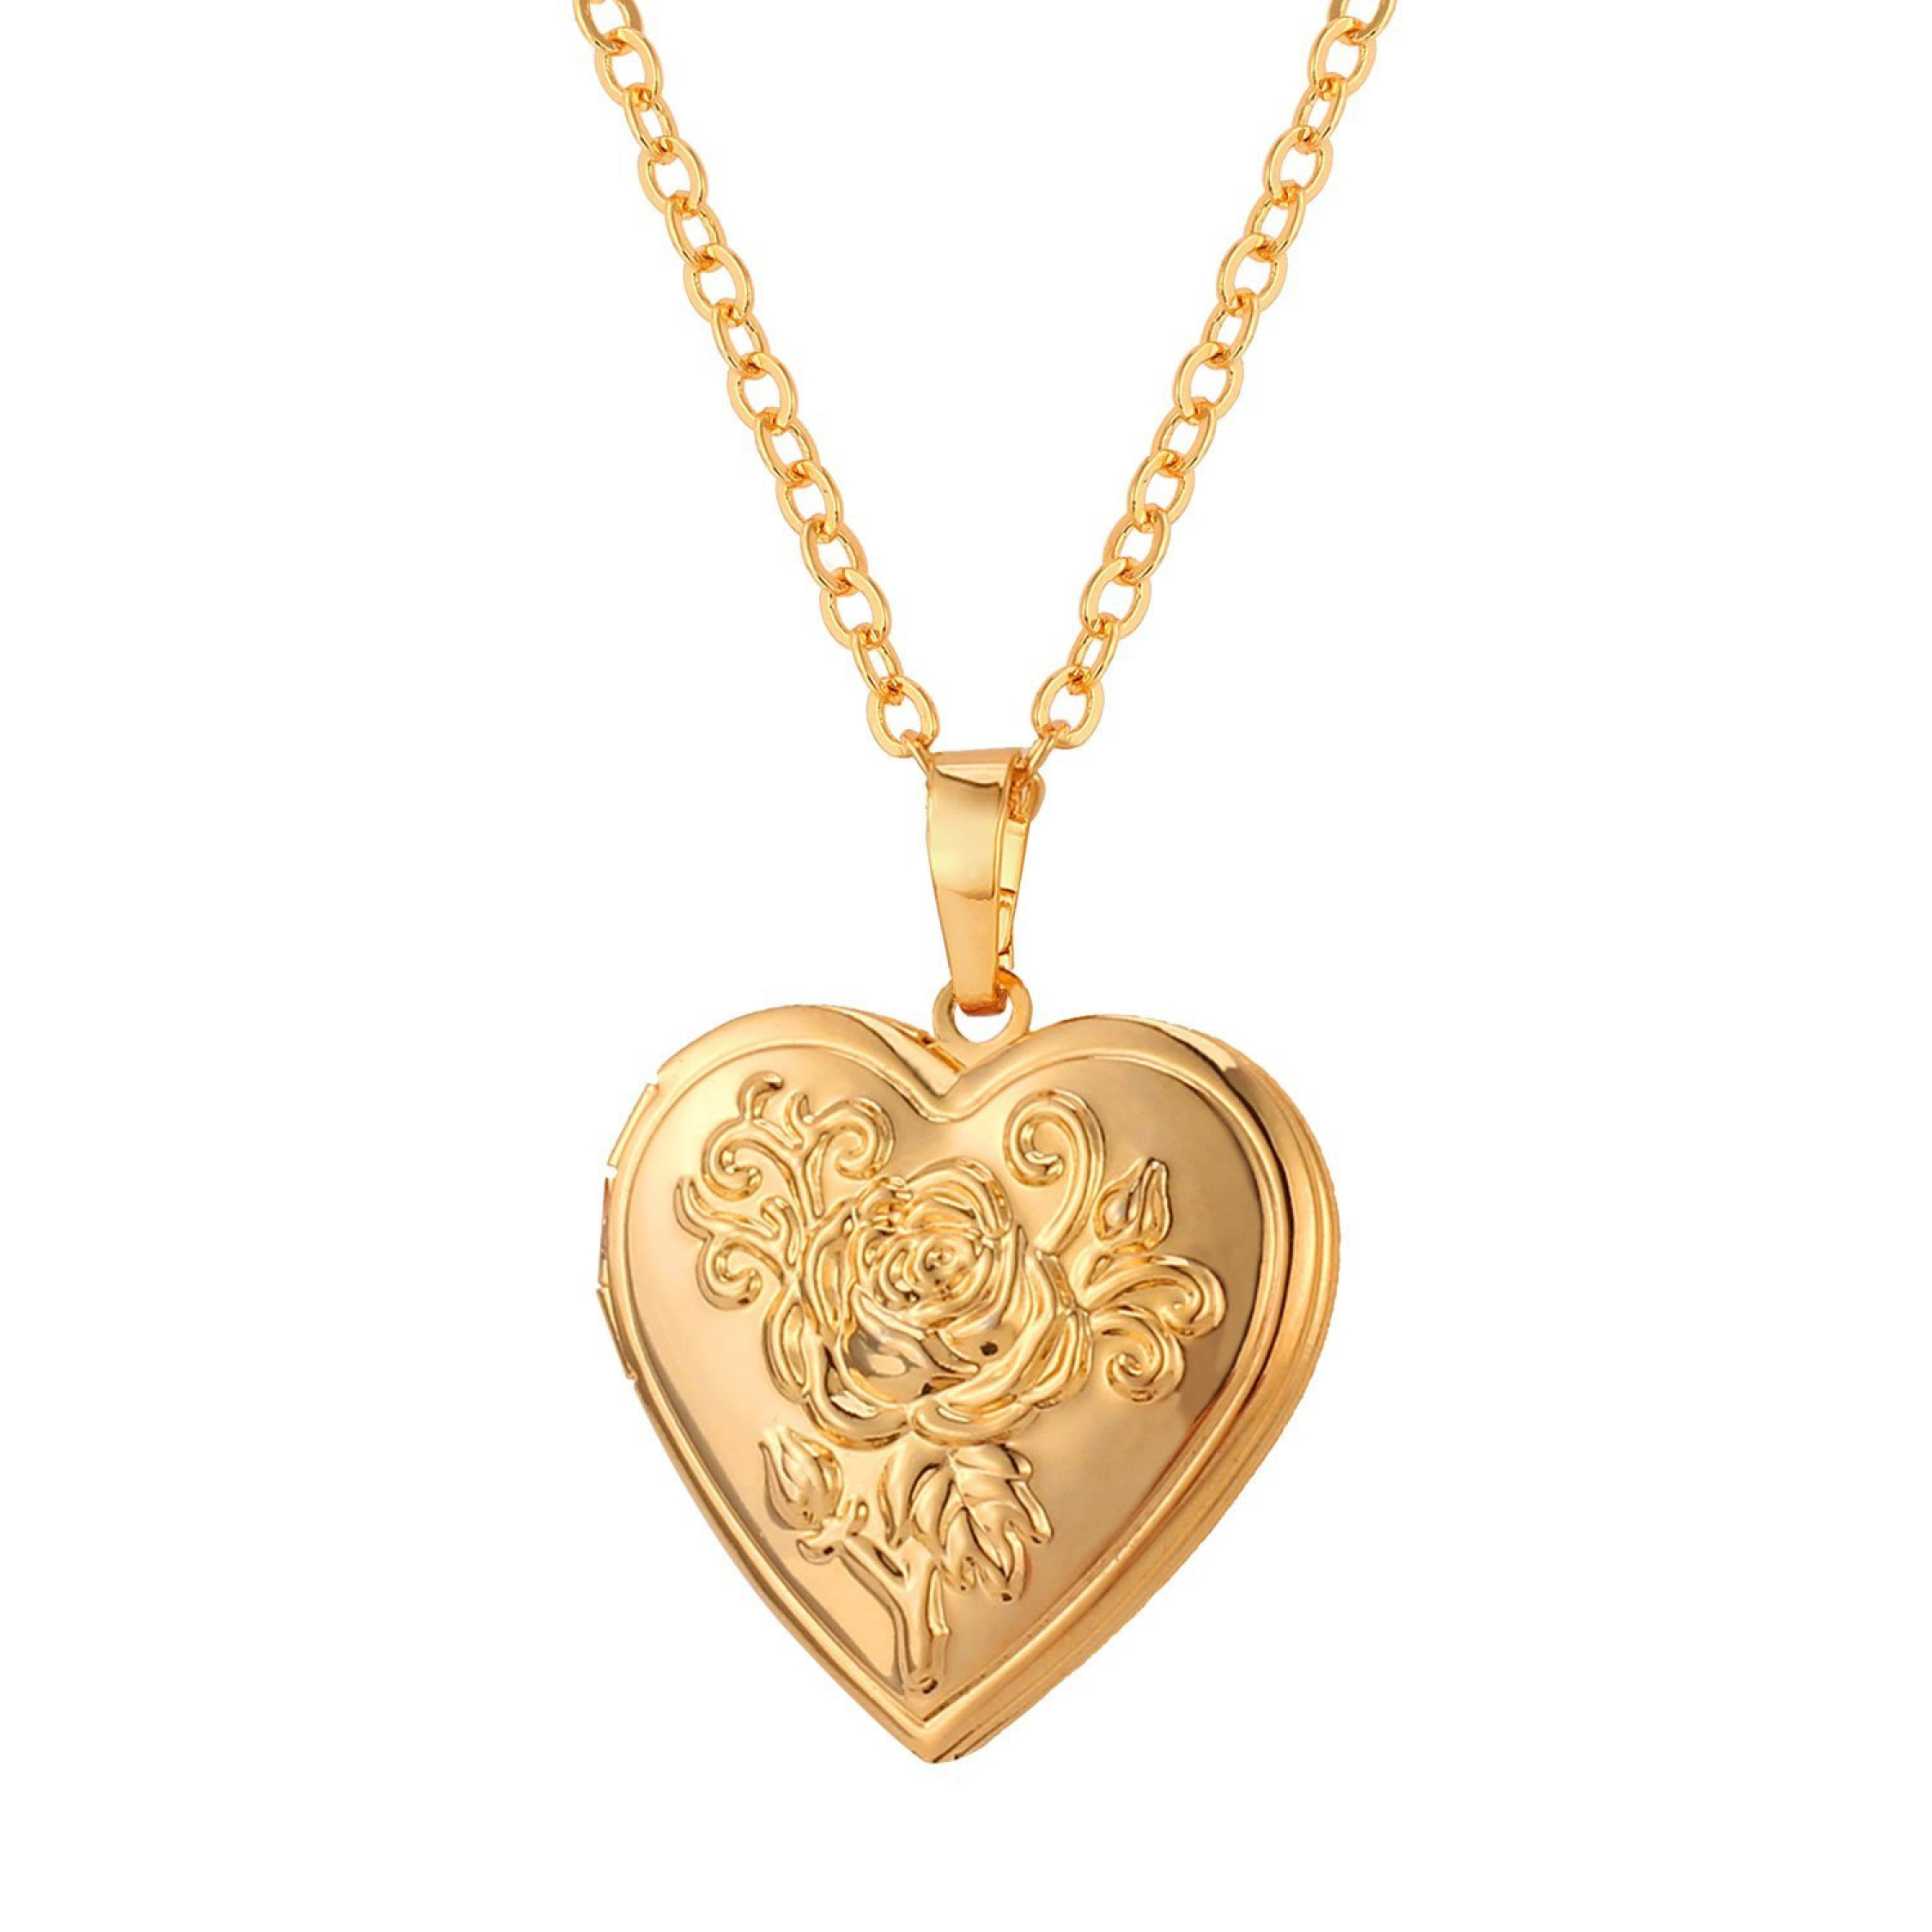 Heart shaped photo locket pendant women fashion jewelry 18k gold foto en forma de corazon colgante mujer moda aloadofball Gallery